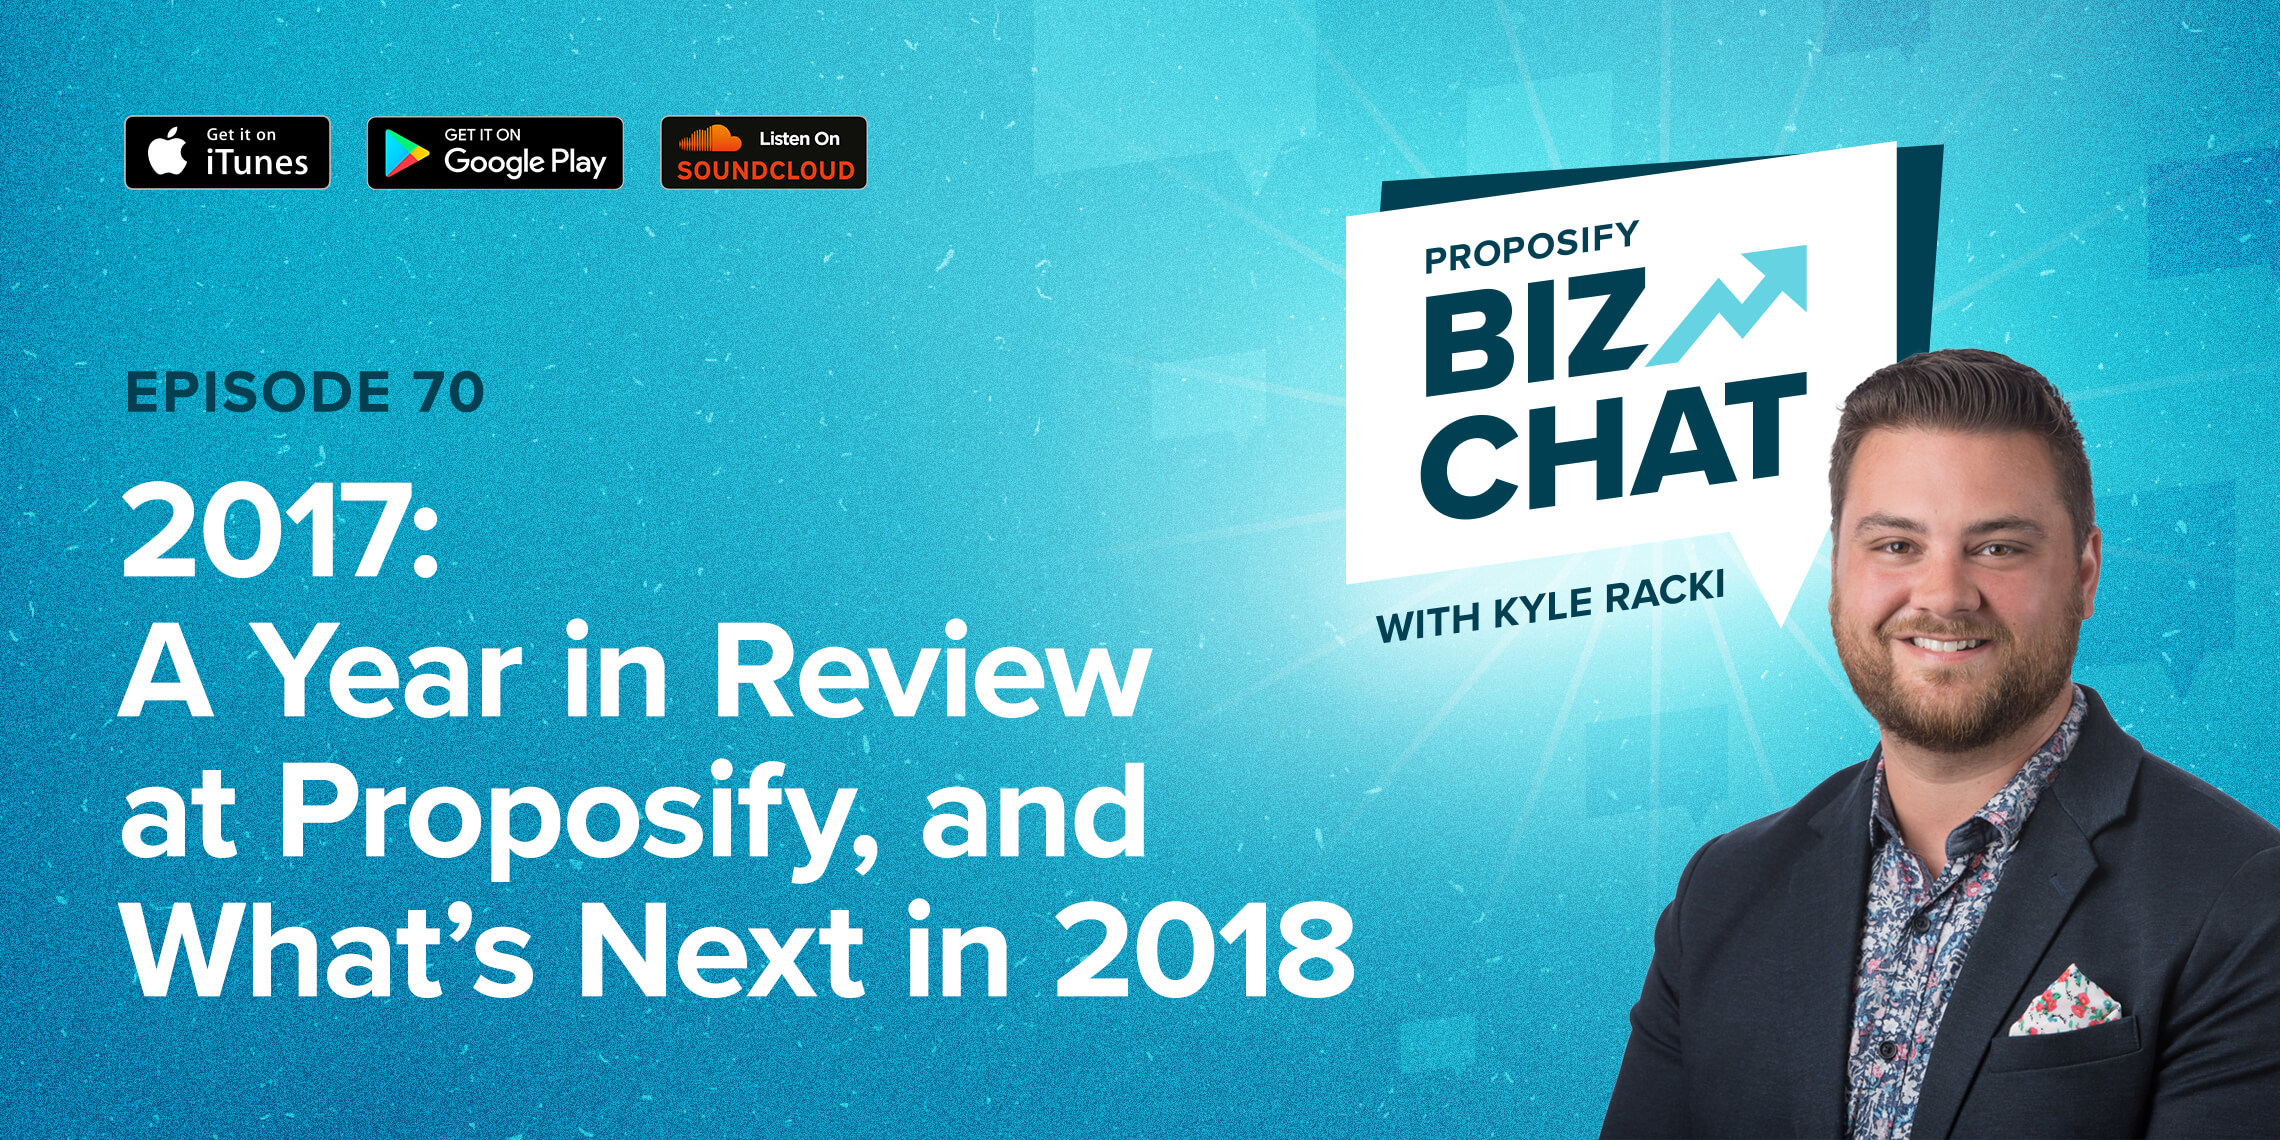 2017: A Year in Review at Proposify, and What's Next in 2018